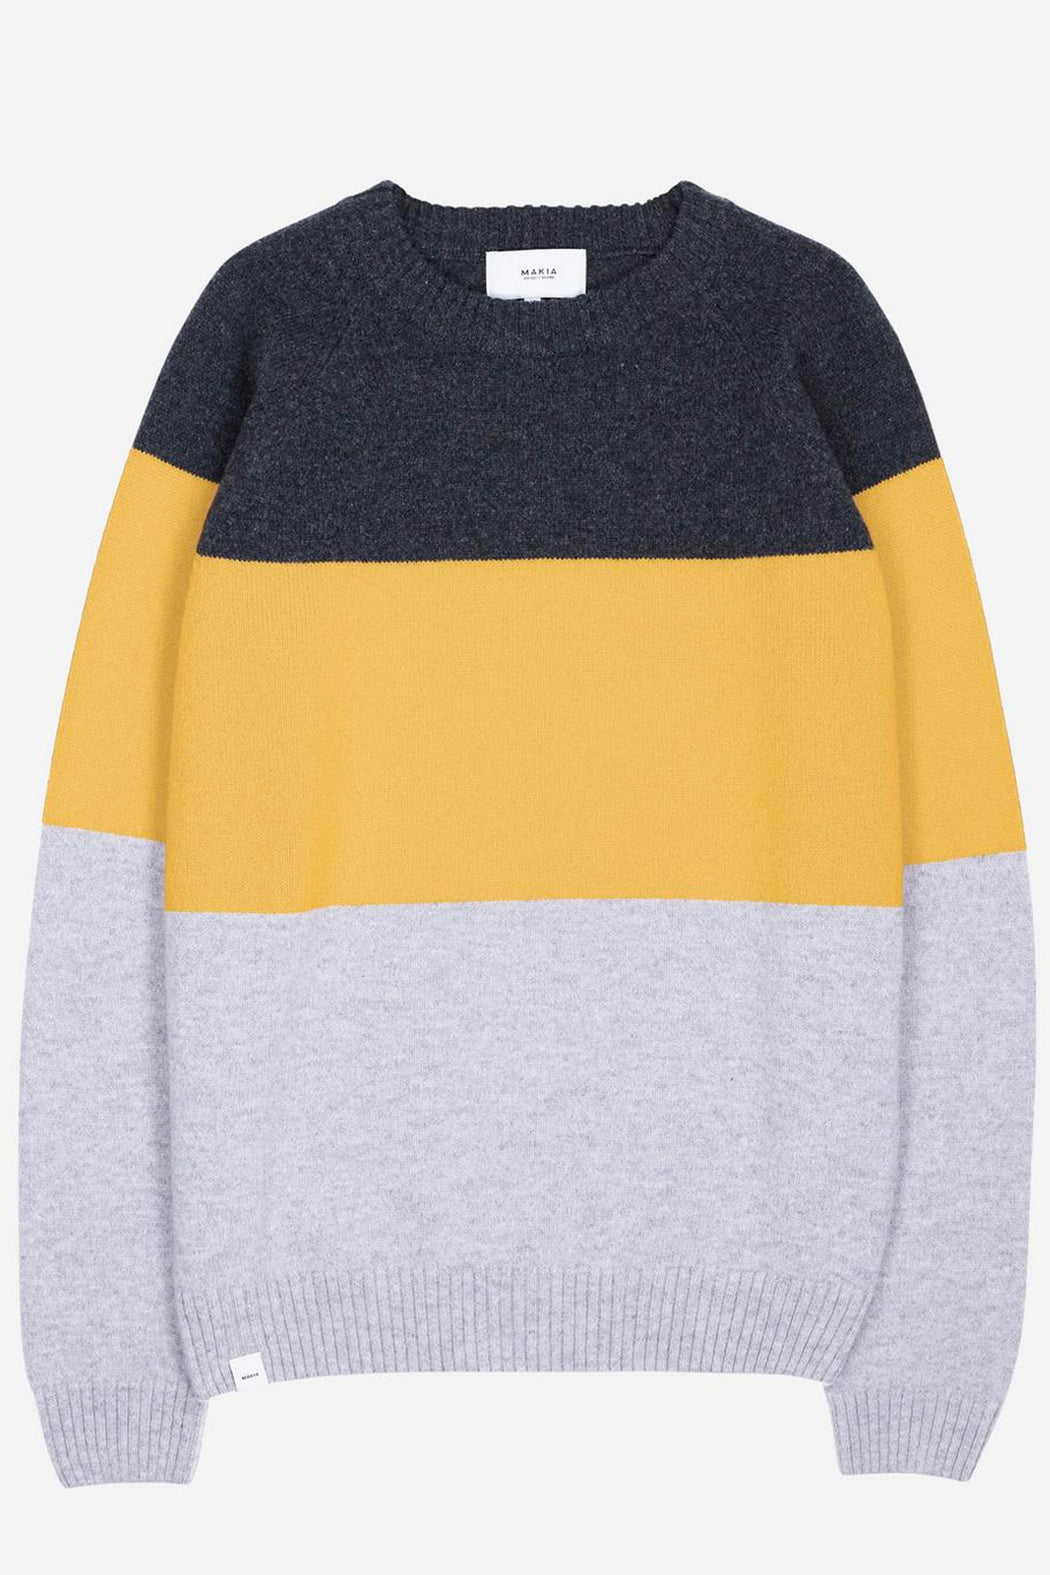 BLOCK KNIT Pullover grey yellow